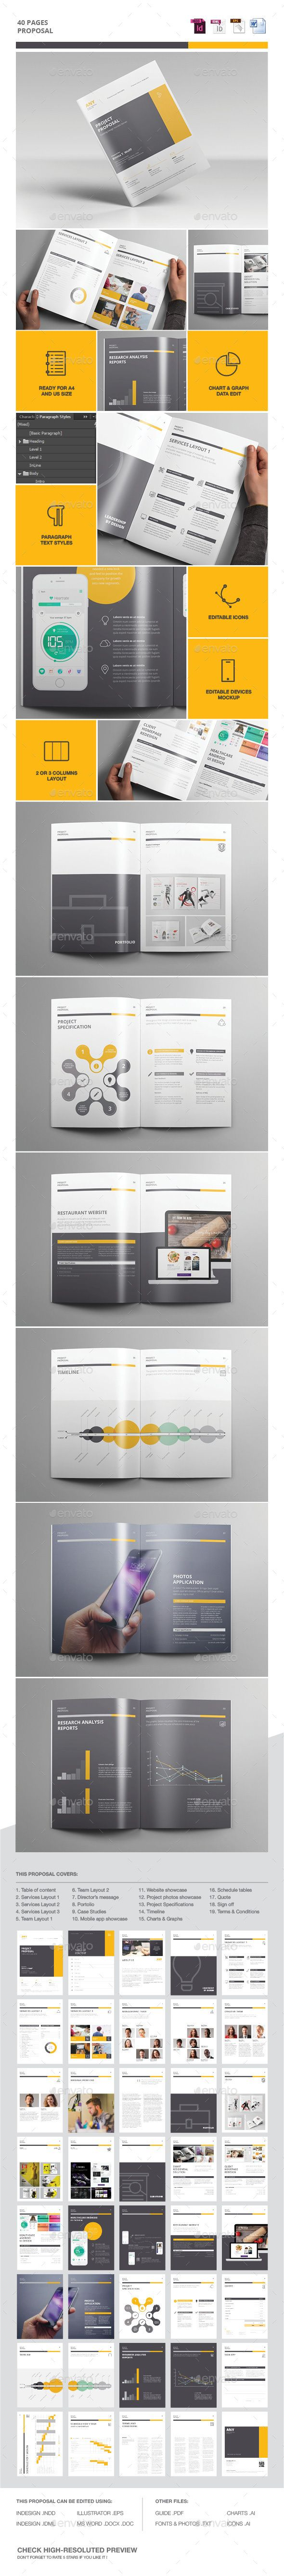 13 best Proposal images – Proposal Layouts